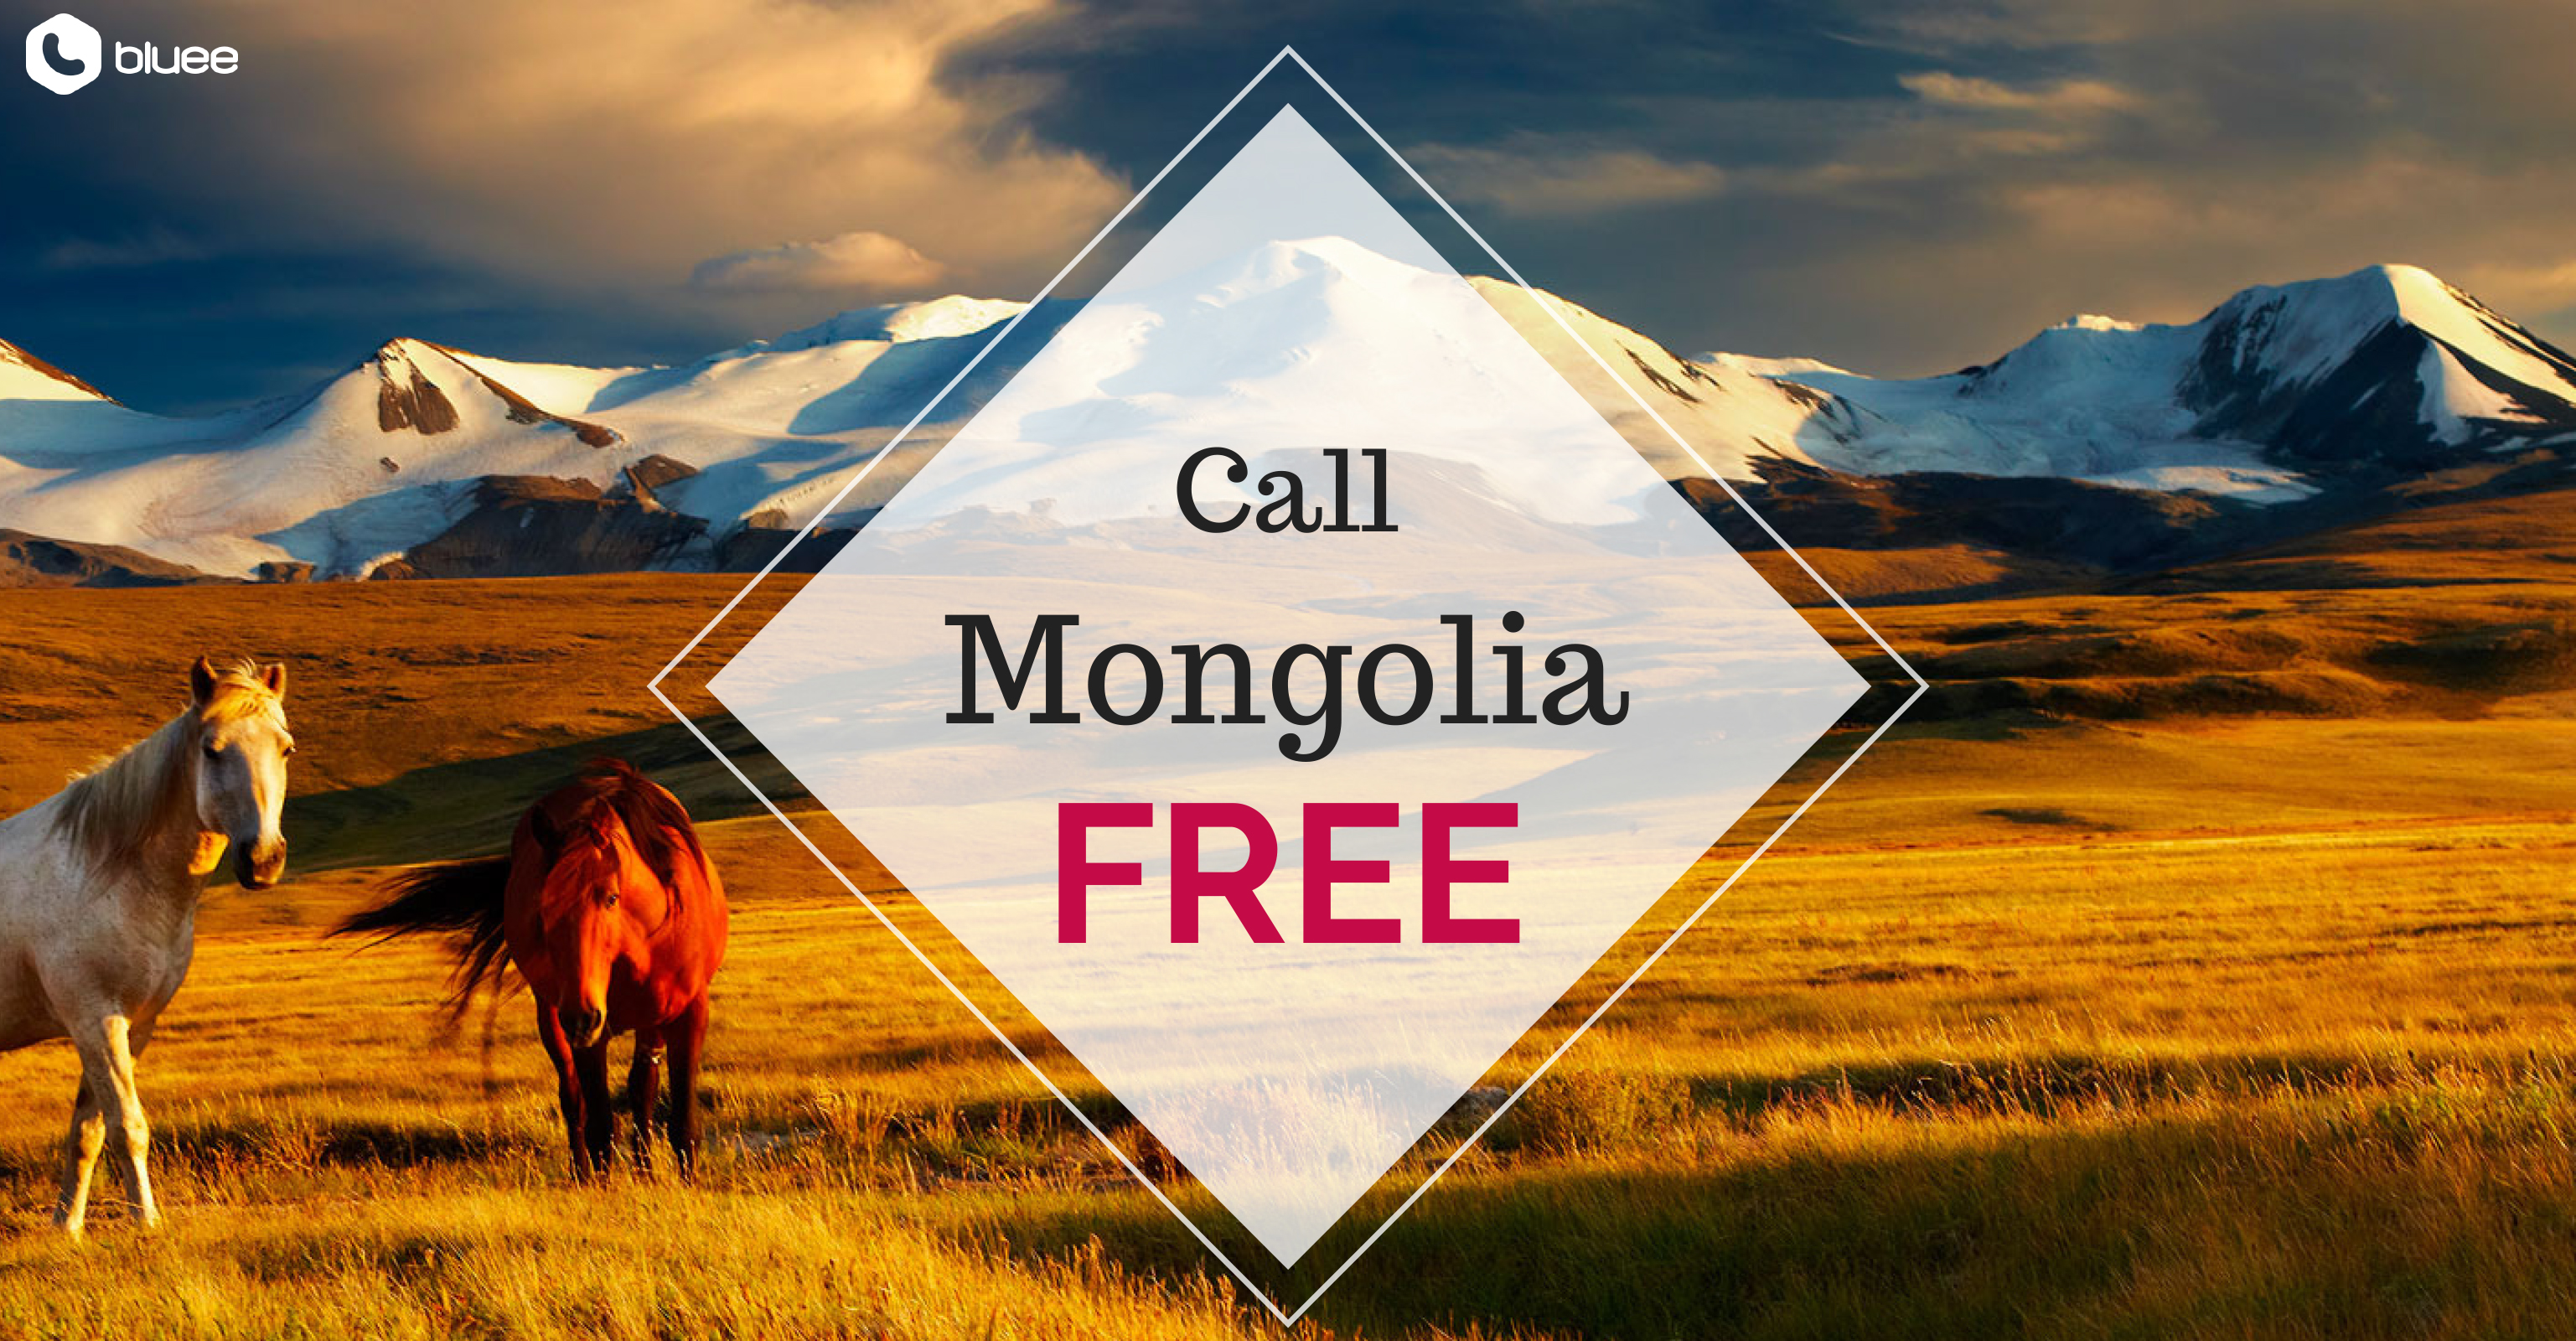 Free Thursday: Call Mongolia For FREE!